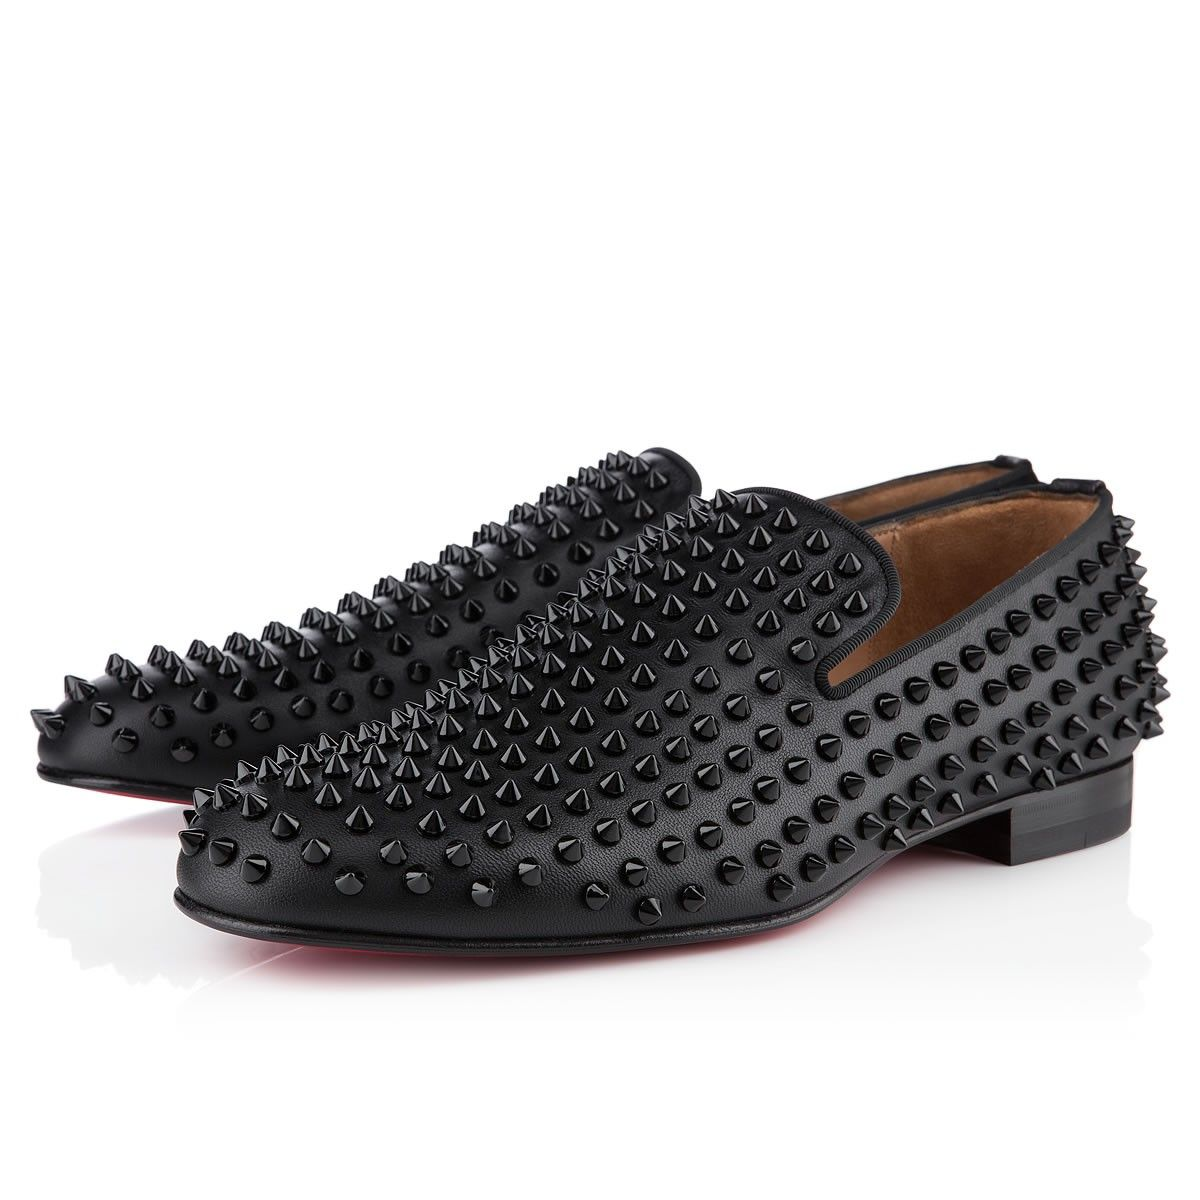 42d038dc2d5949 ... men s shoes and leather goods collections available at Christian  Louboutin Online Boutique. ROLLERBOY SPIKES